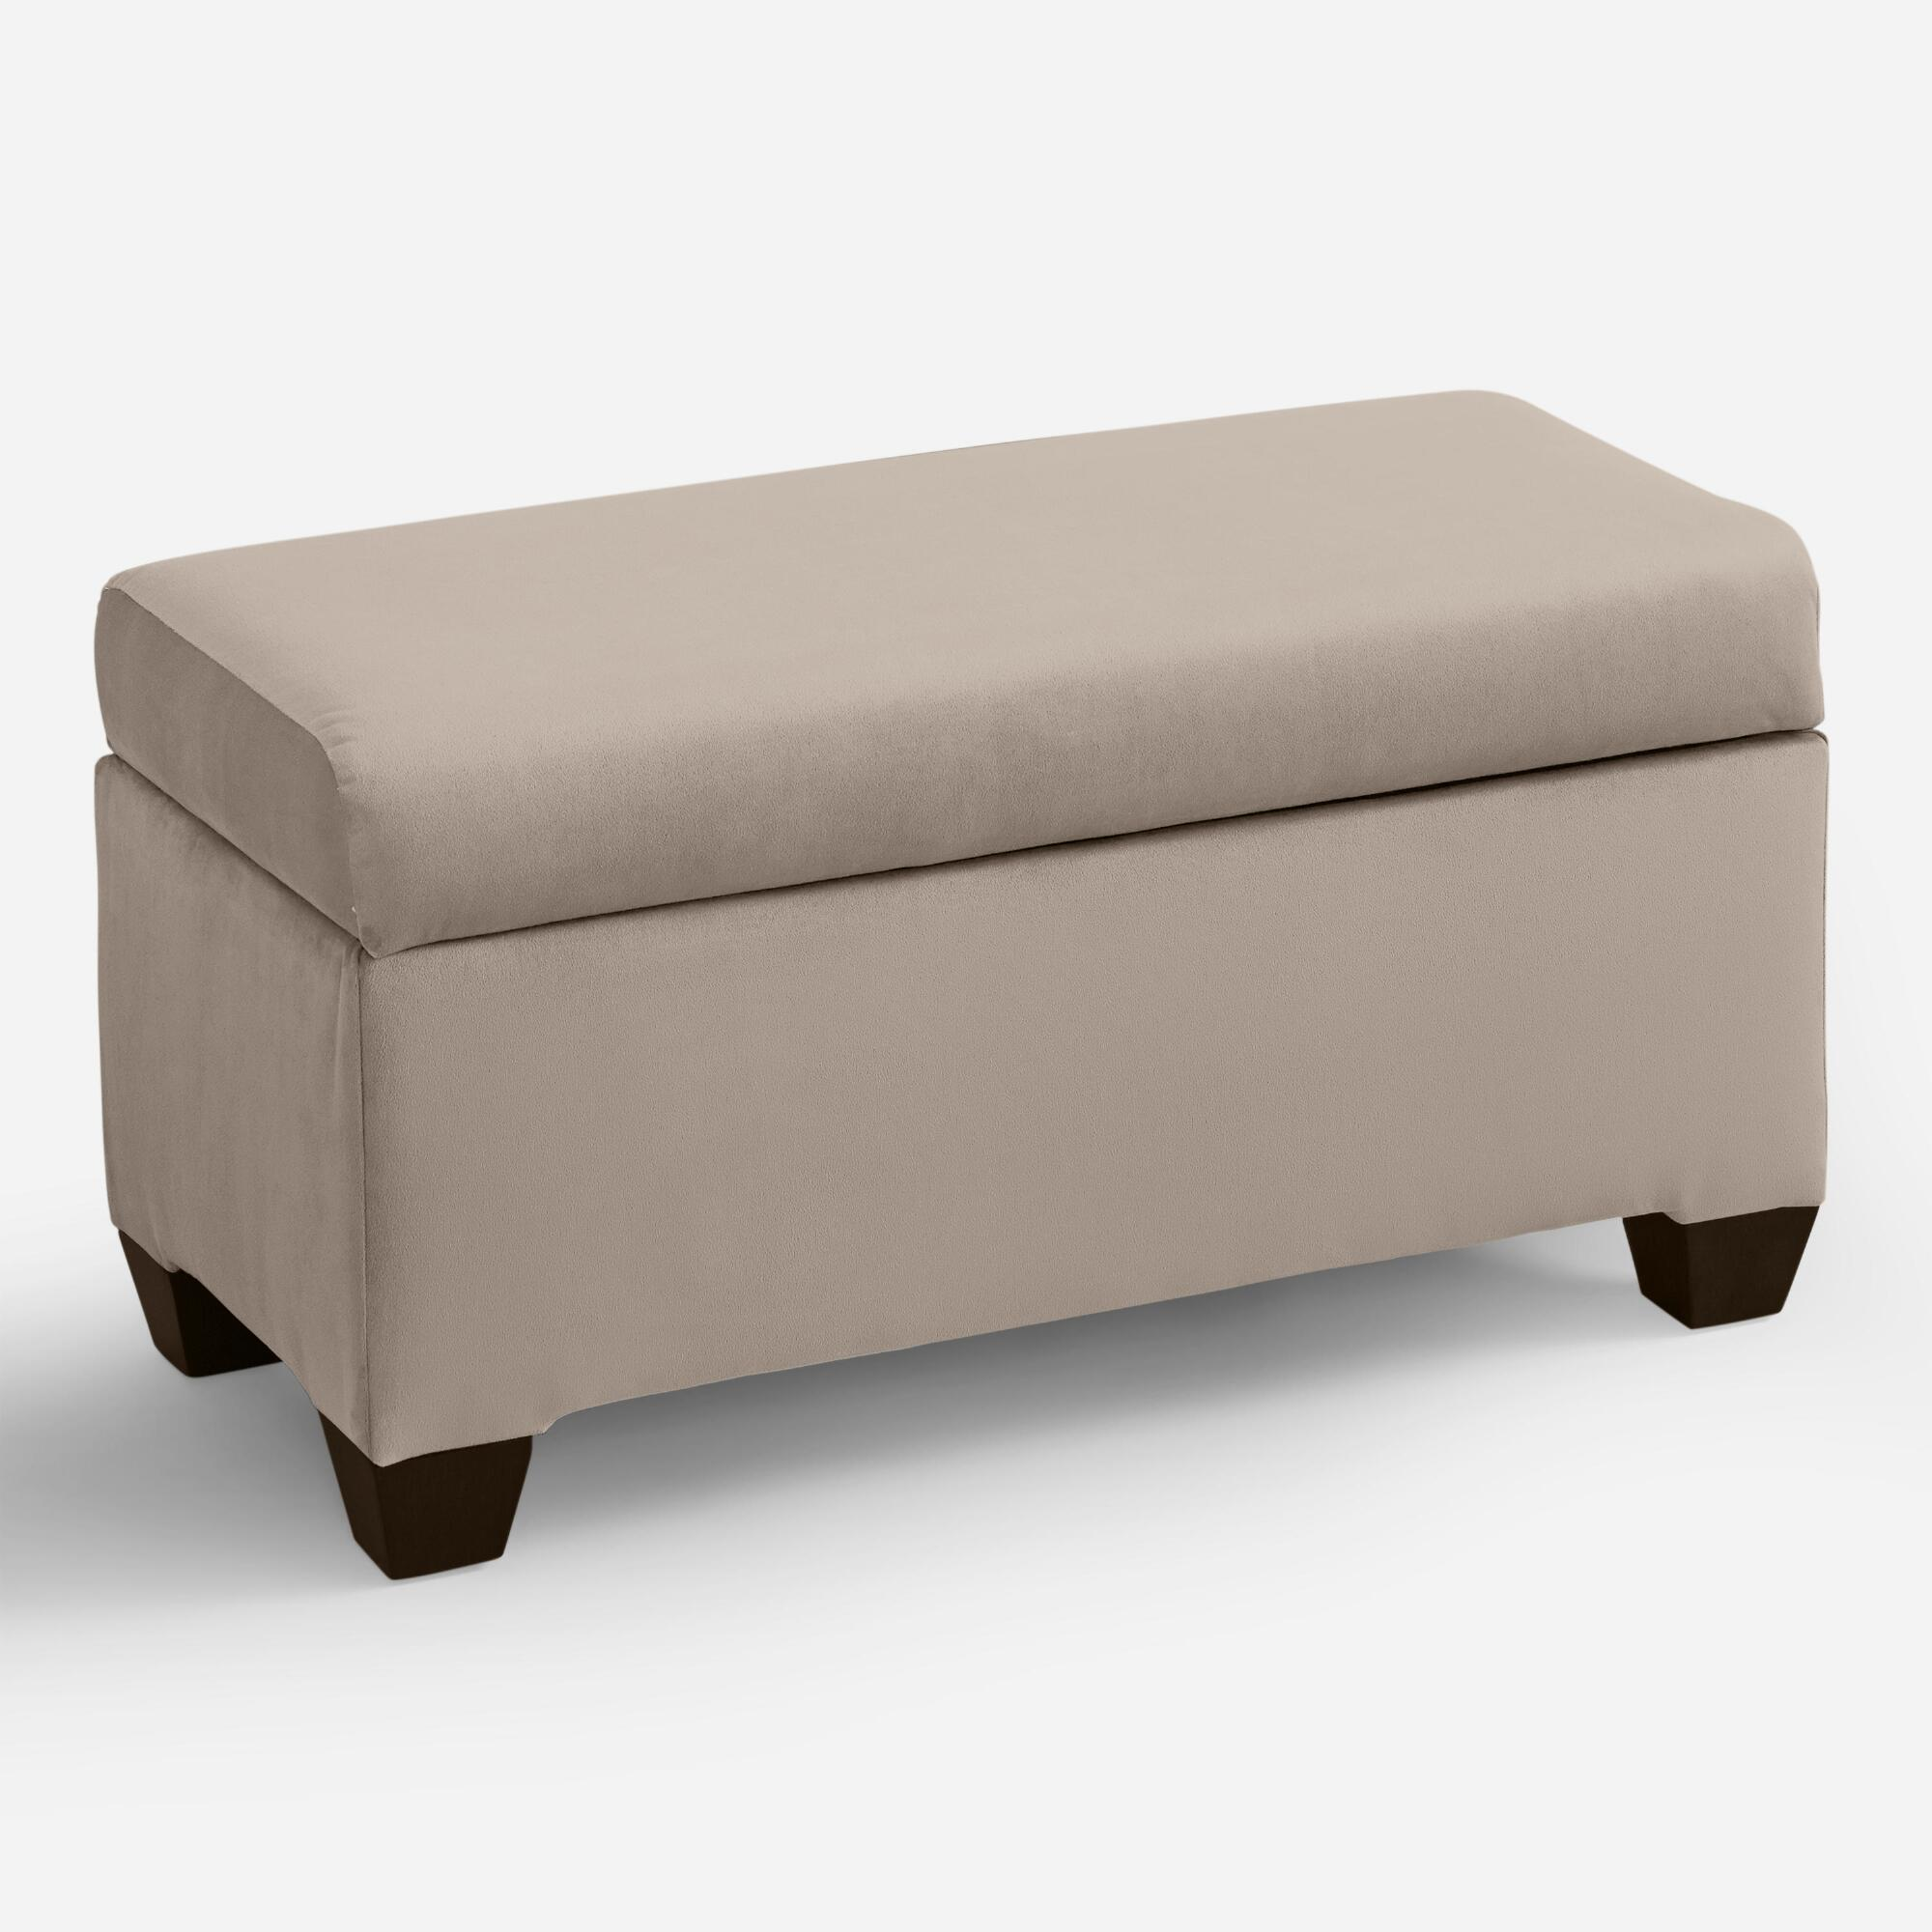 Velvet pembroke upholstered storage bench world market Velvet storage bench